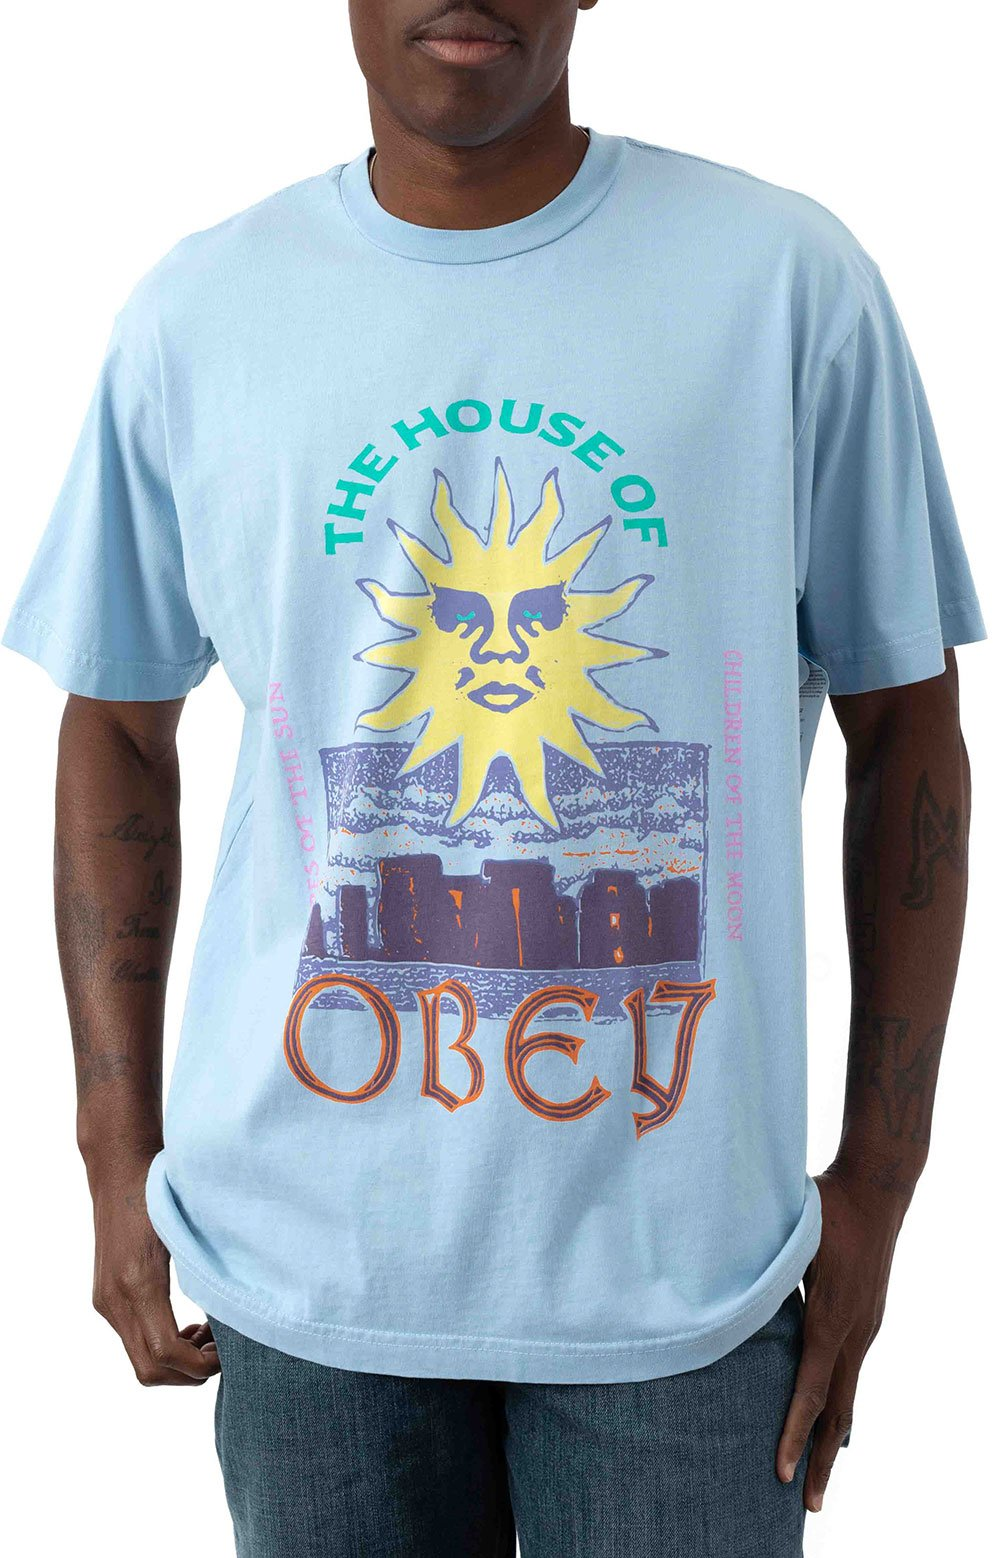 The House Of Obey T-Shirt - Good Grey